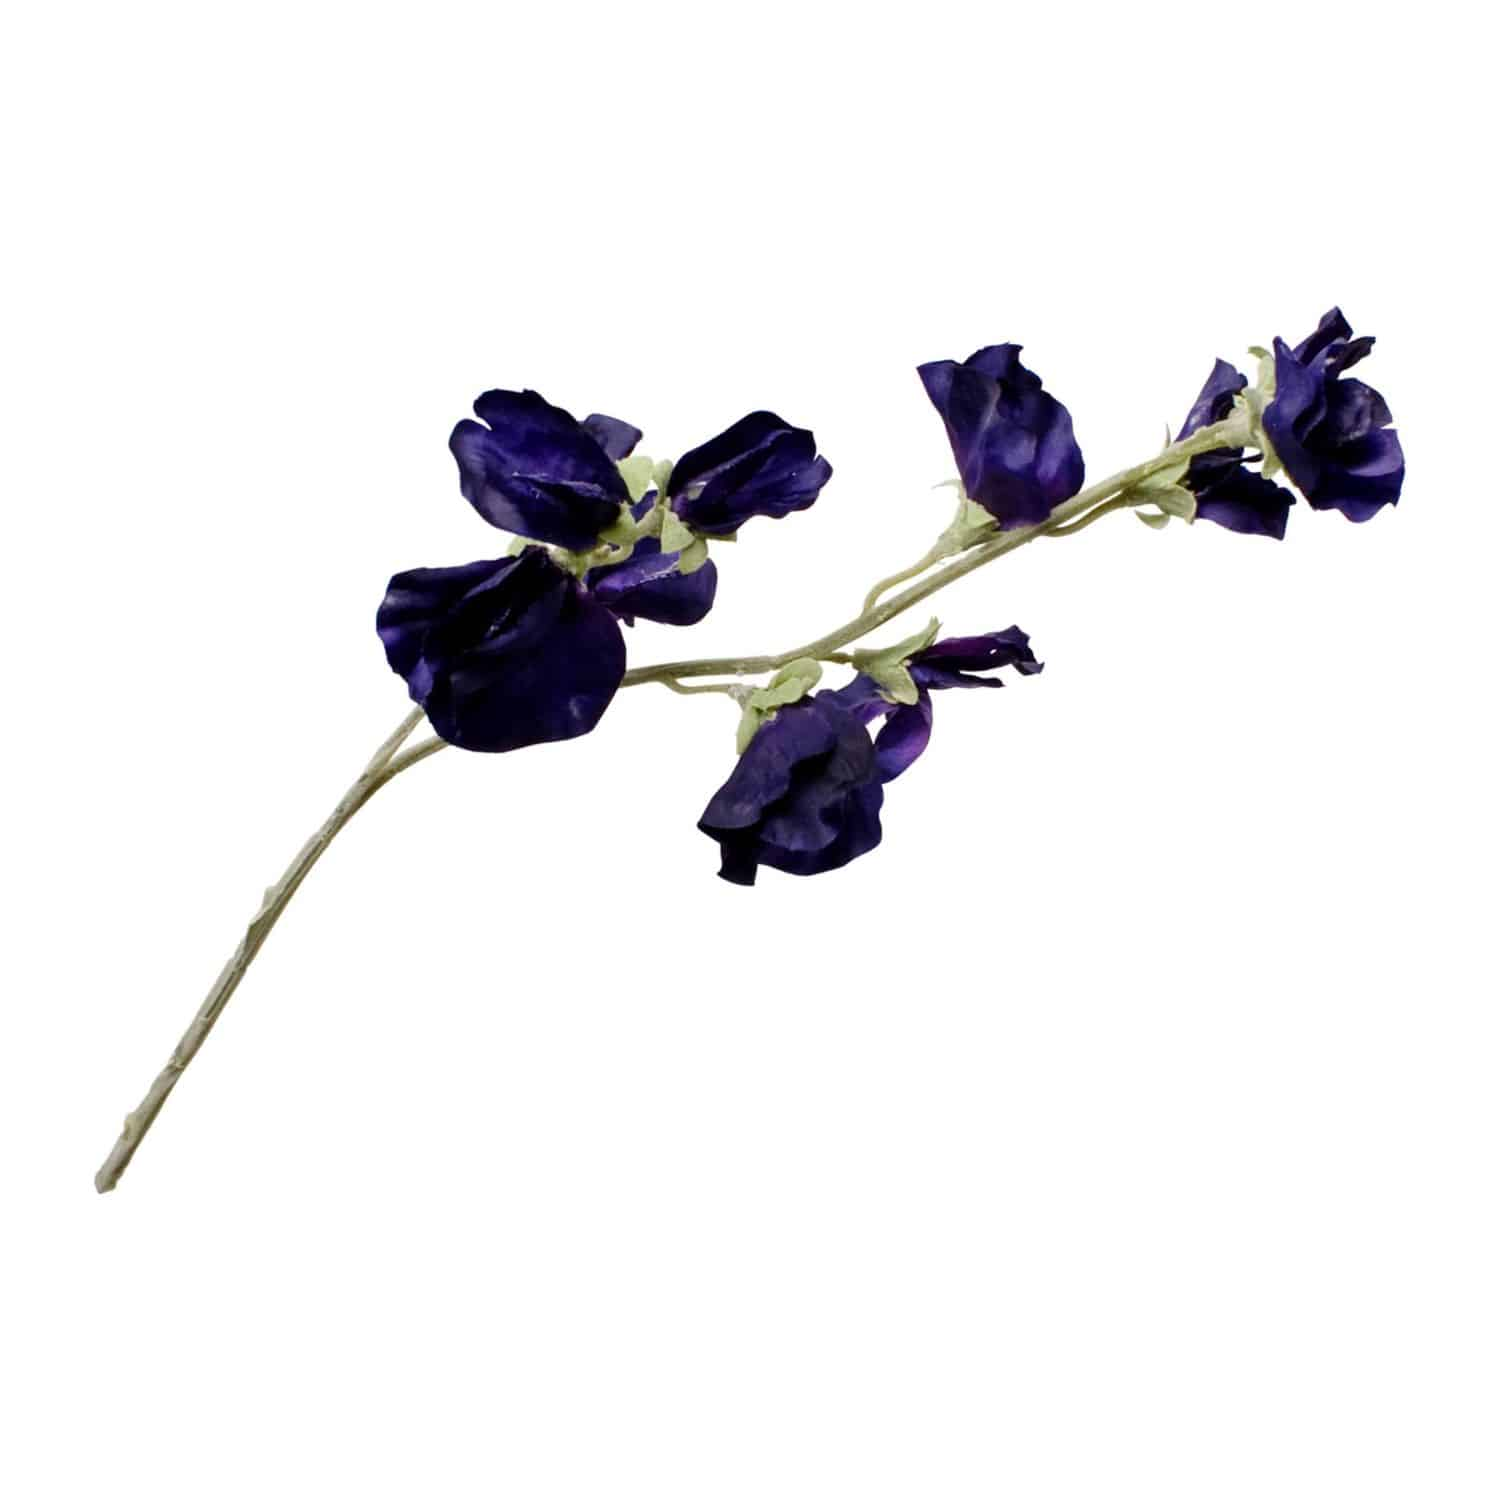 Buy dark purple faux sweet pea flowers in lifelike detail. A wonderful filler to any arrangement. The natural delicate petals add touches of colour.